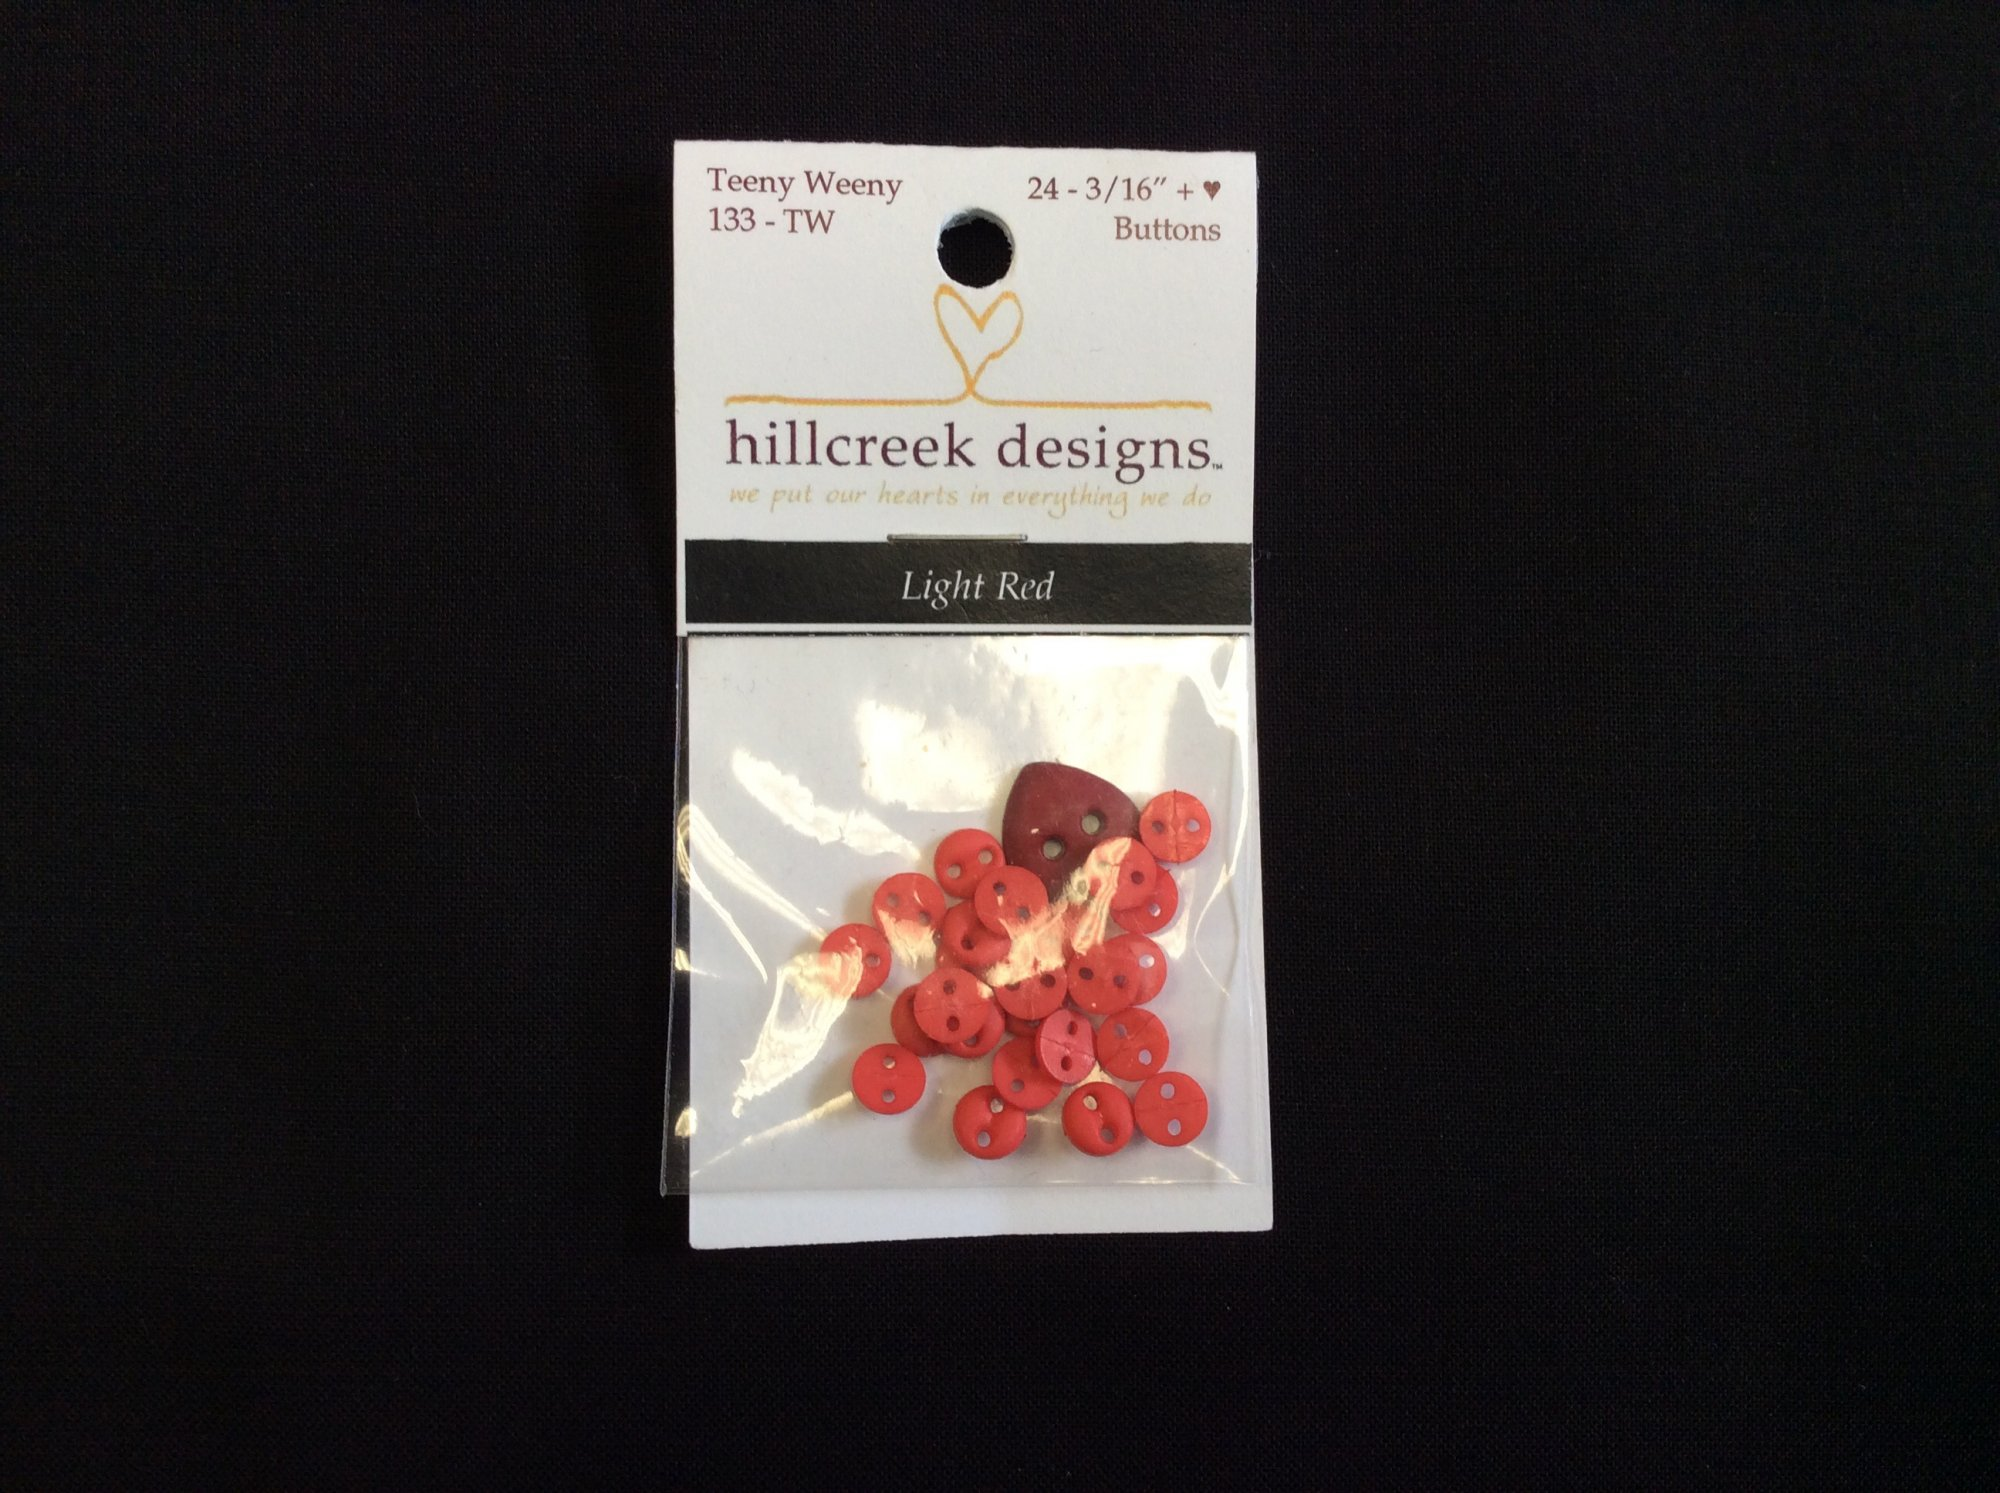 Light Red Teeny Weeny Buttons 133 TW